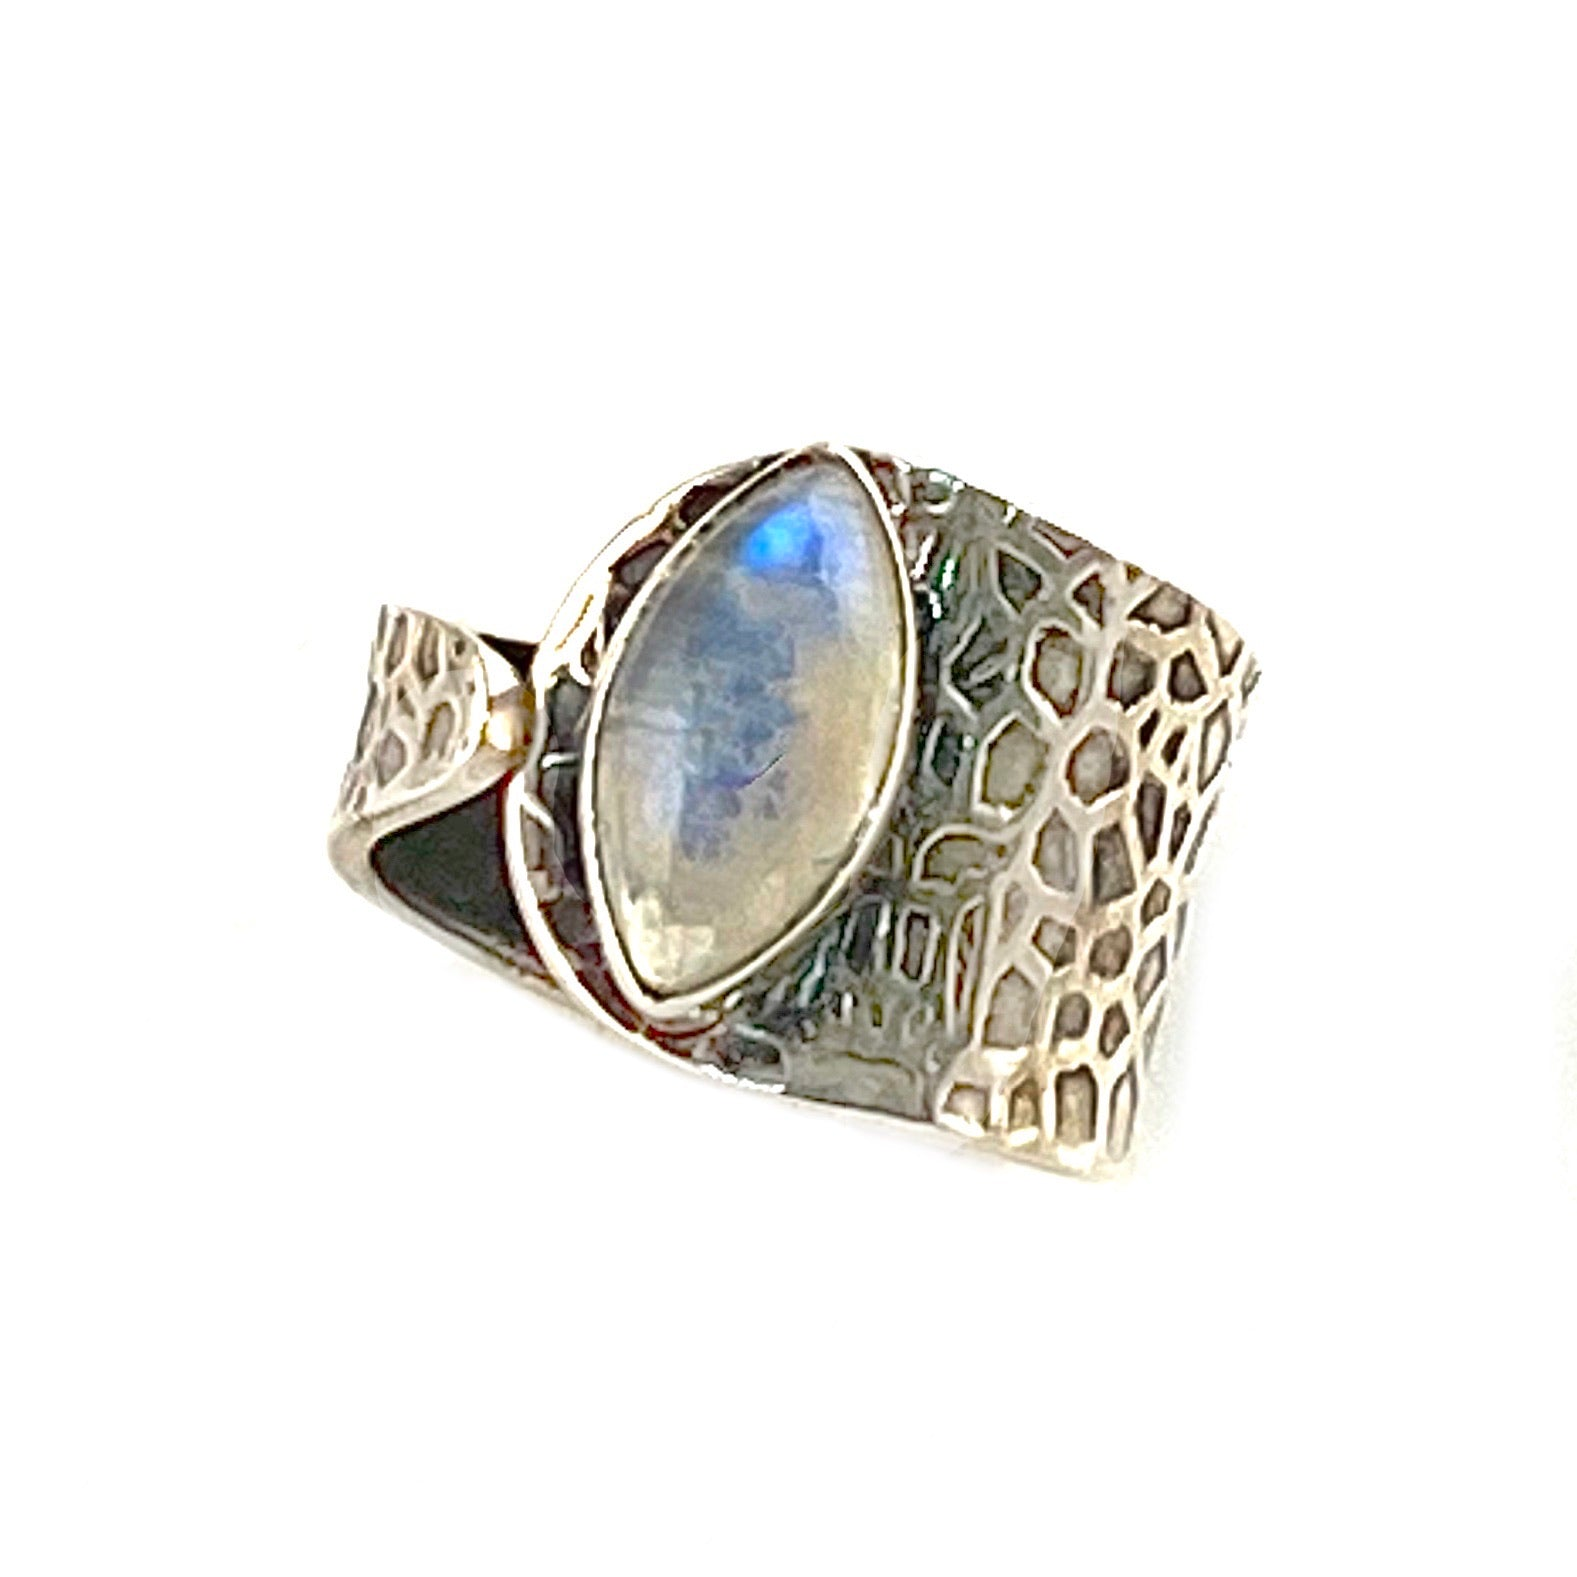 Moonstone Textured Sterling Silver Adjustable Ring - Keja Designs Jewelry